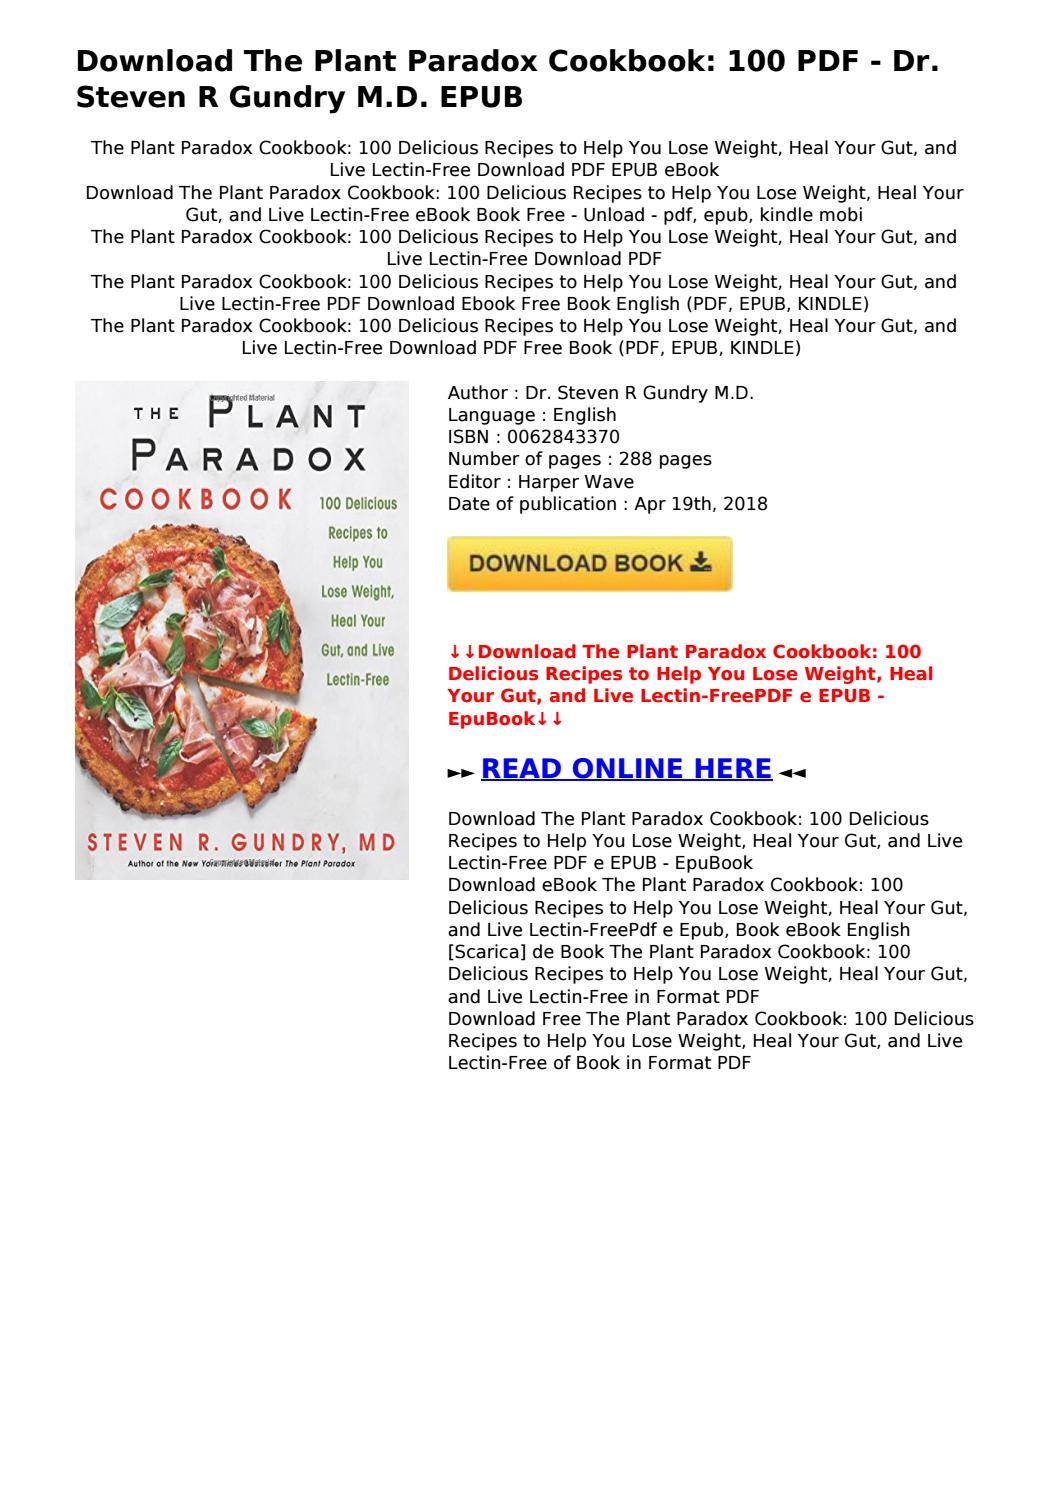 The Plant Paradox Cookbook Pdf